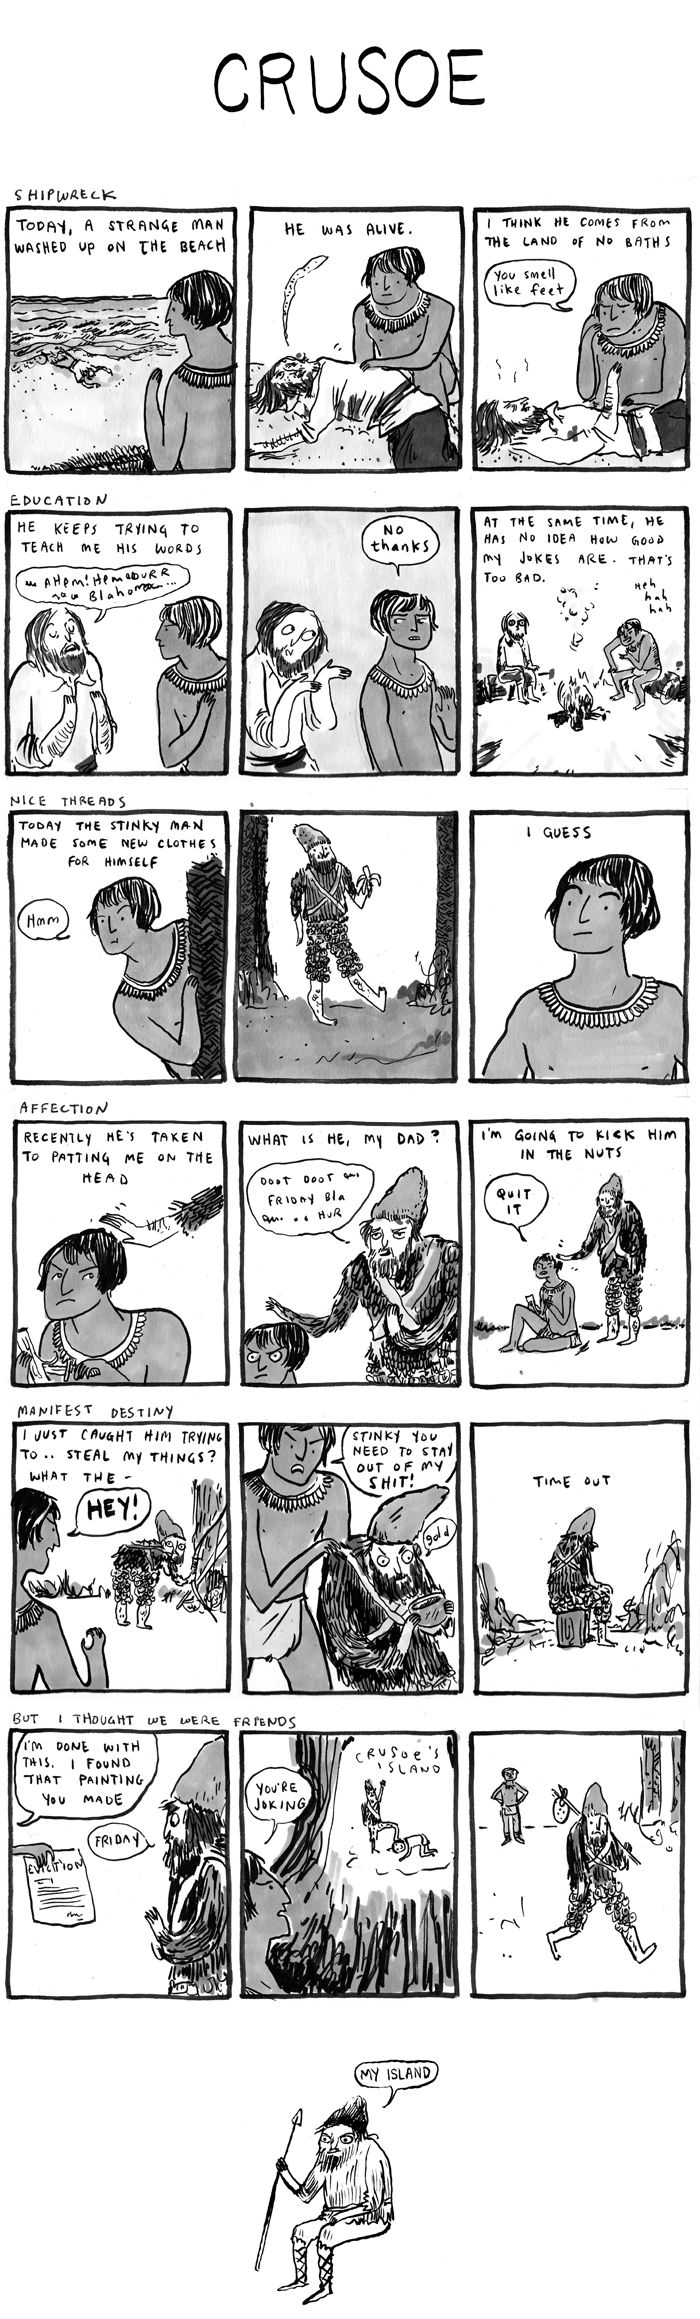 Hark! A Vagrant: Kate Beatons Witty Comics about Historical & Literary Figures | Brain Pickings